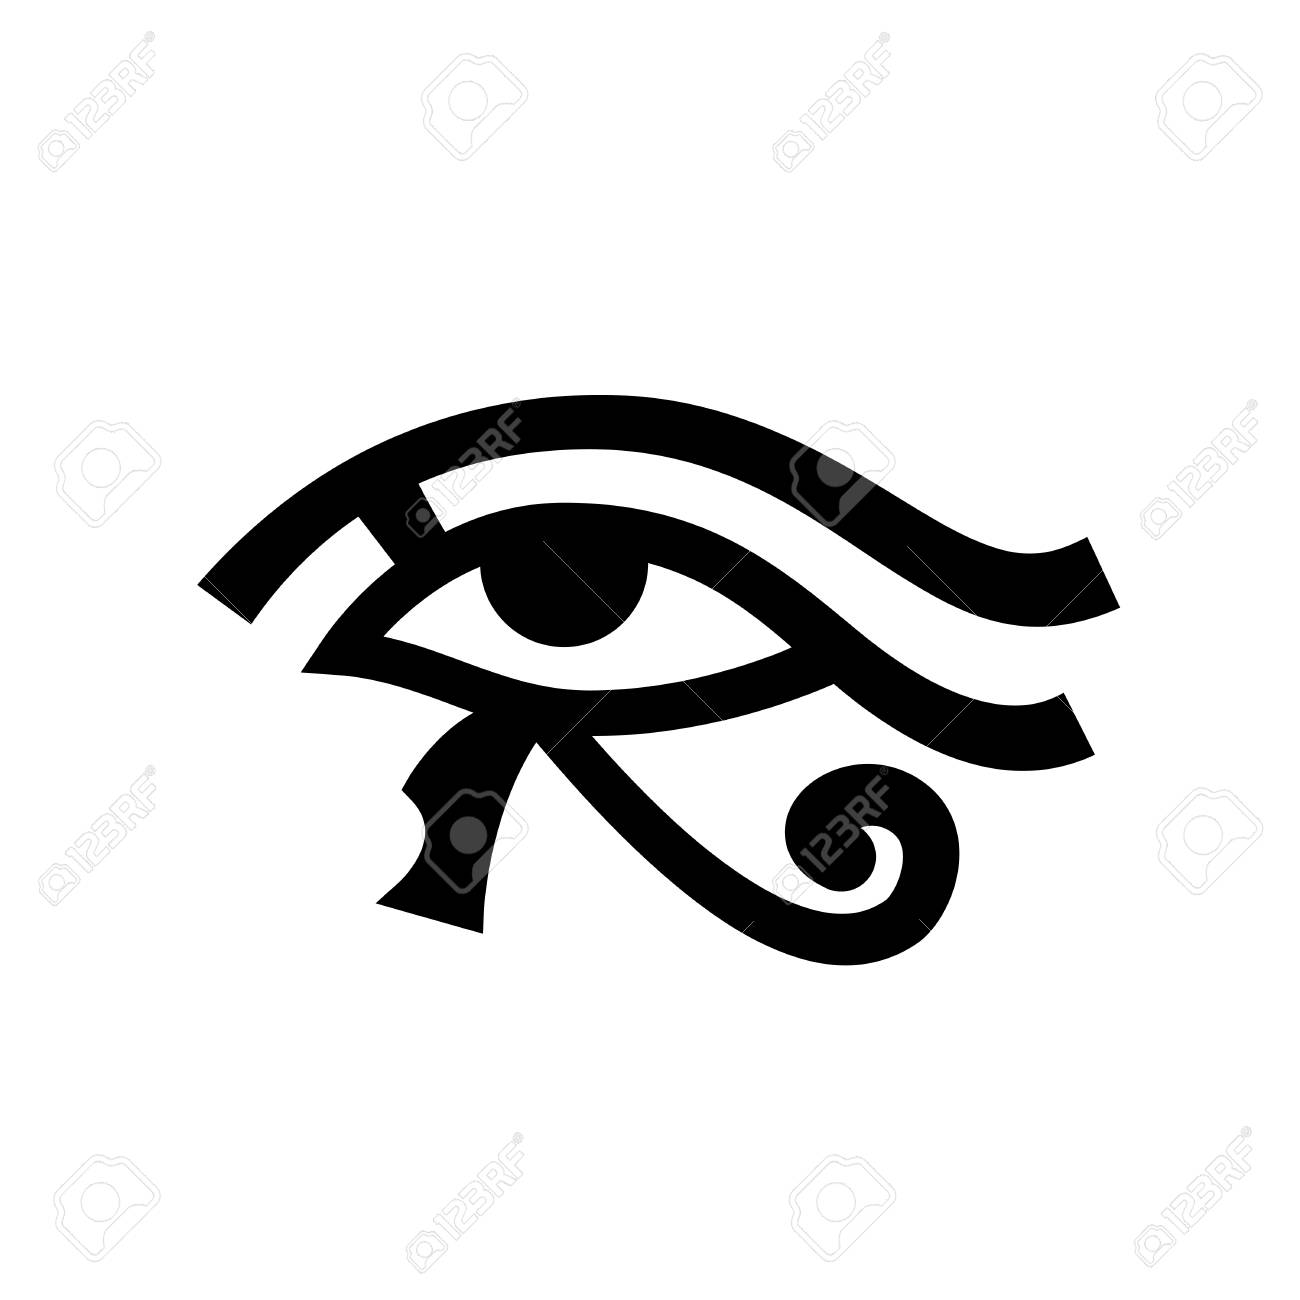 Horus Eye Eye Of Ra Ancient Egyptian Hieroglyphic Mystical